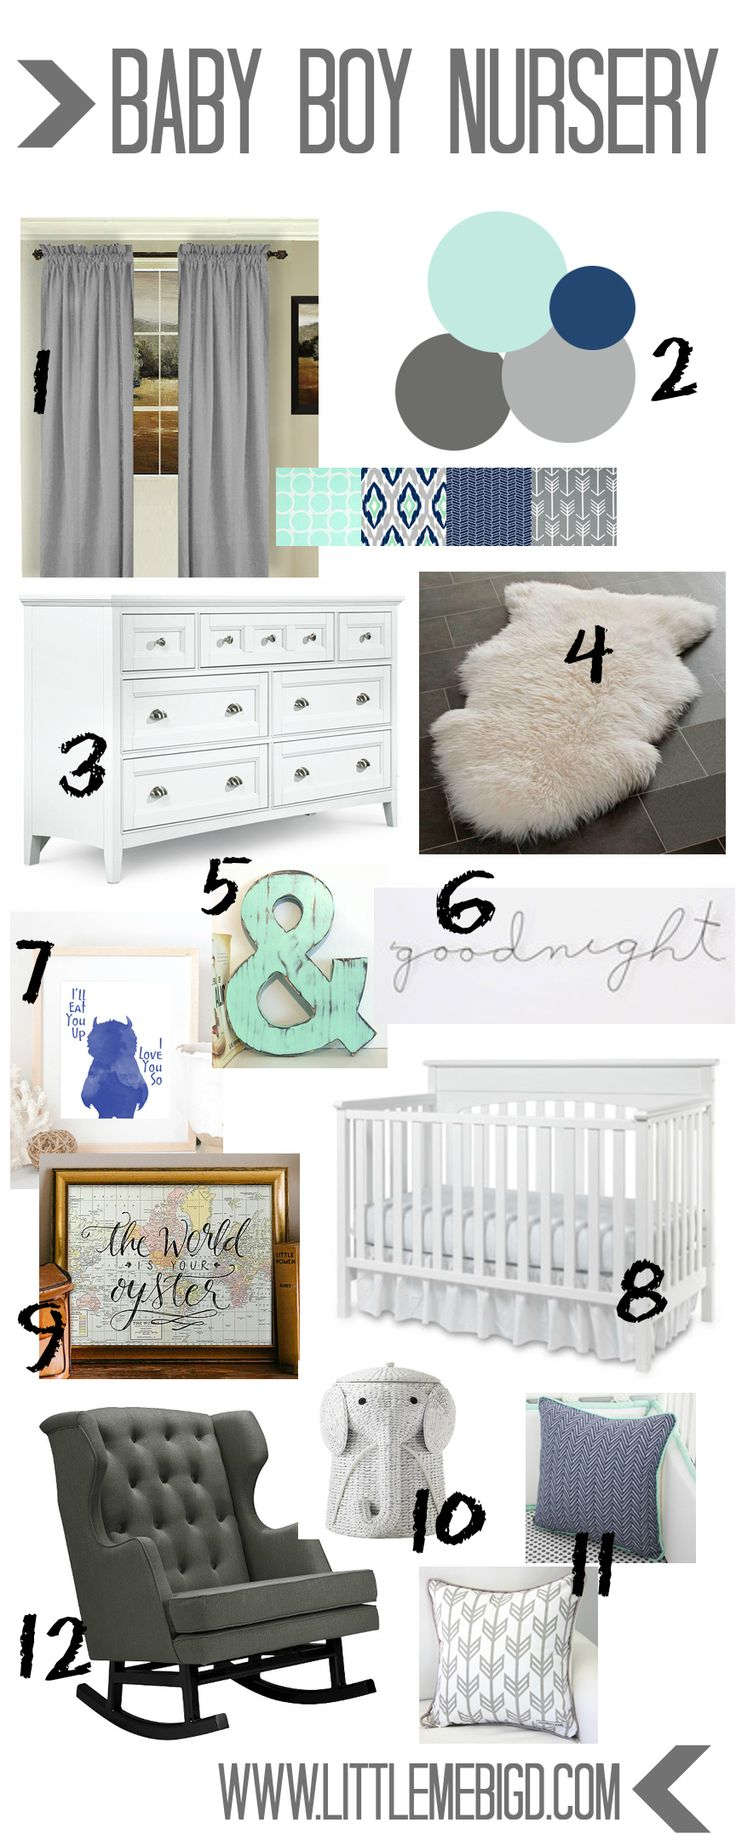 Nursery idea board! Little boy's room. Mint, gray, and navy!